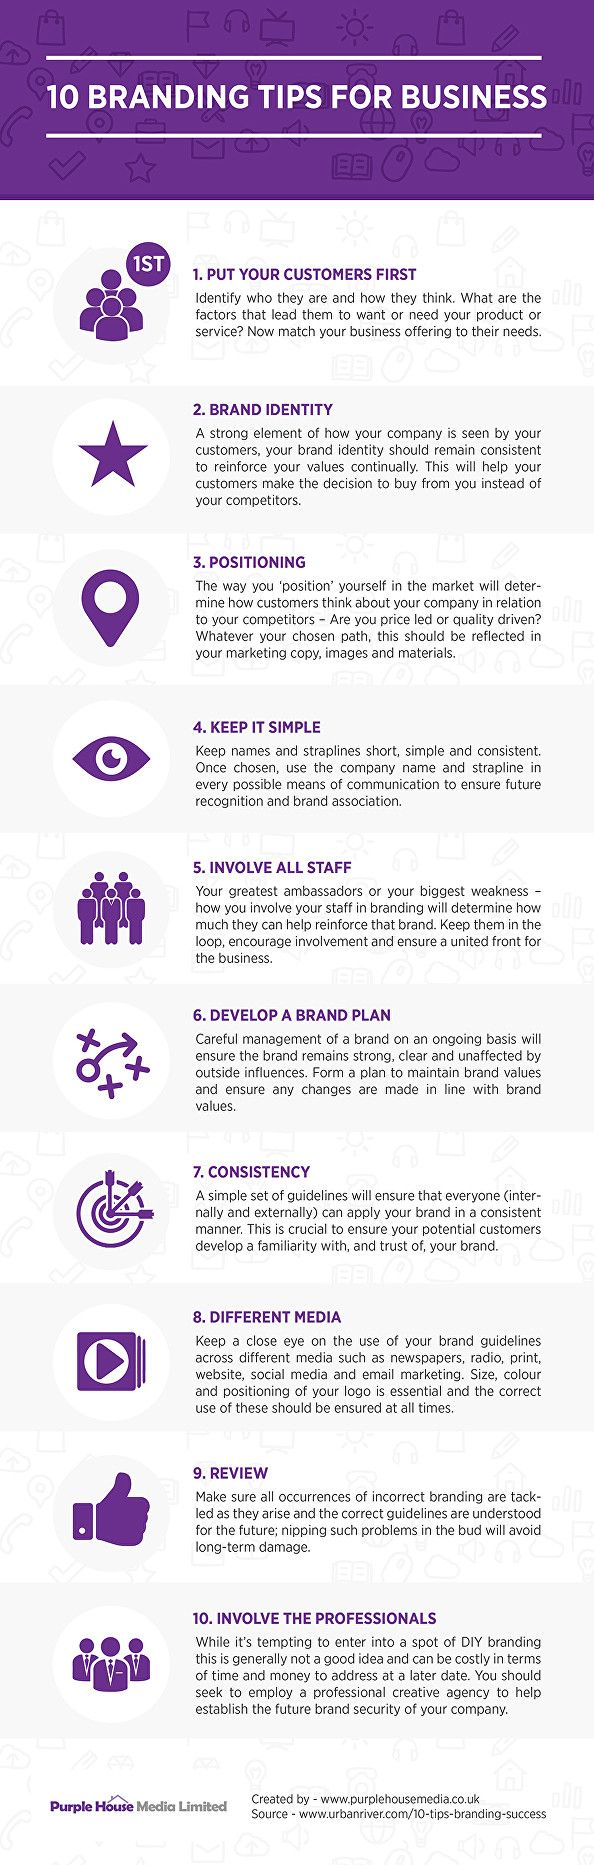 Starting a New Business? 10 Branding Tips for Success #Infographic